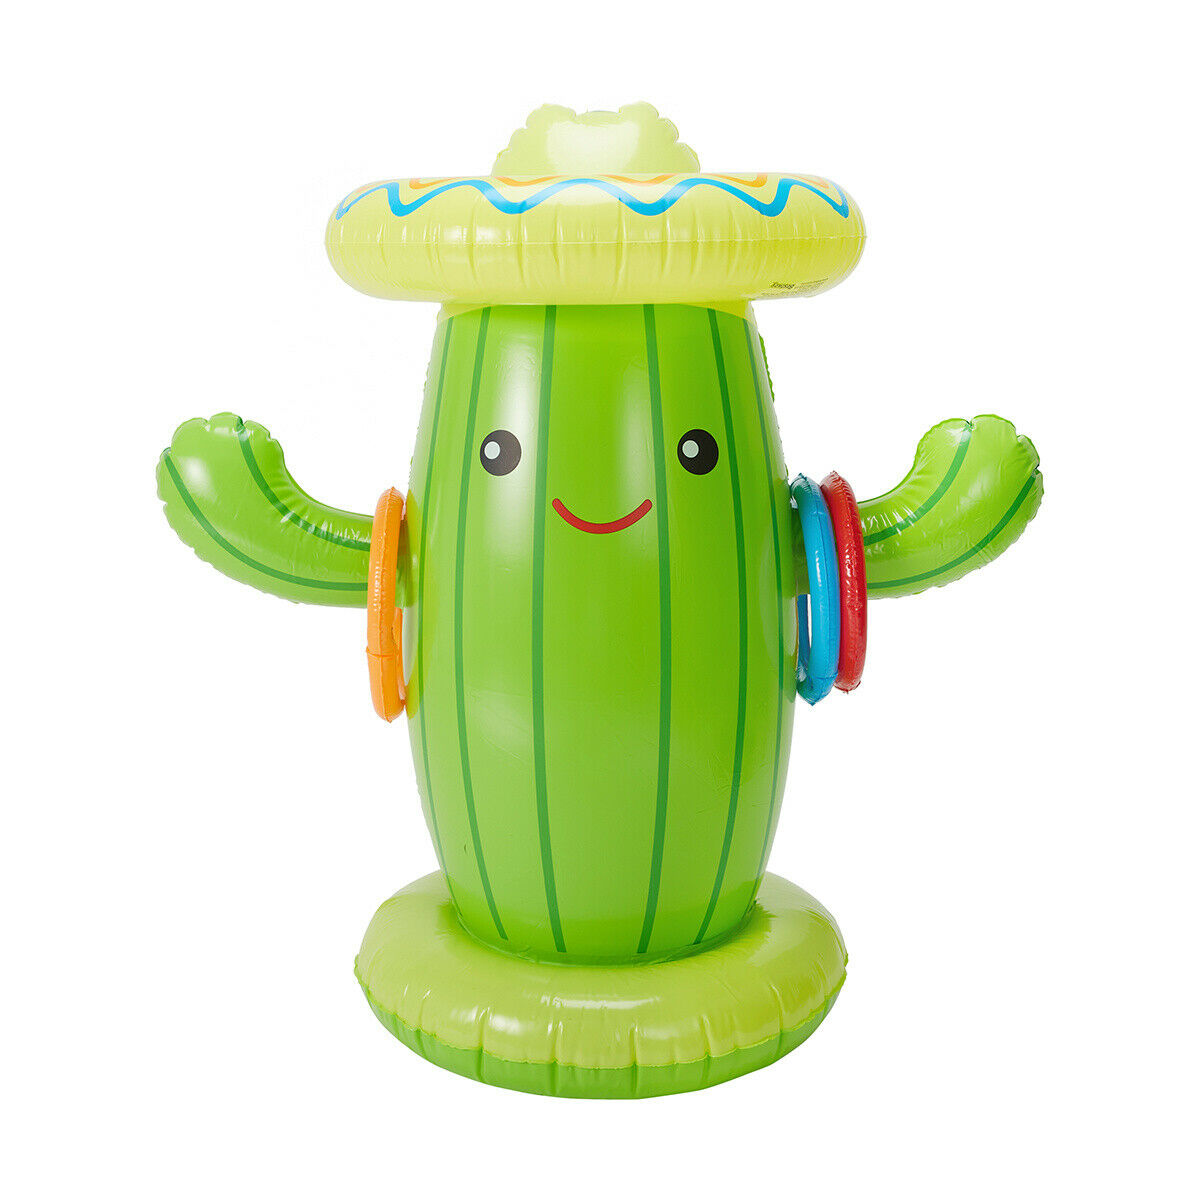 Inflatable Sprinkler For Kids Fun Cactus Toy Children Active Water Toss Rings F1